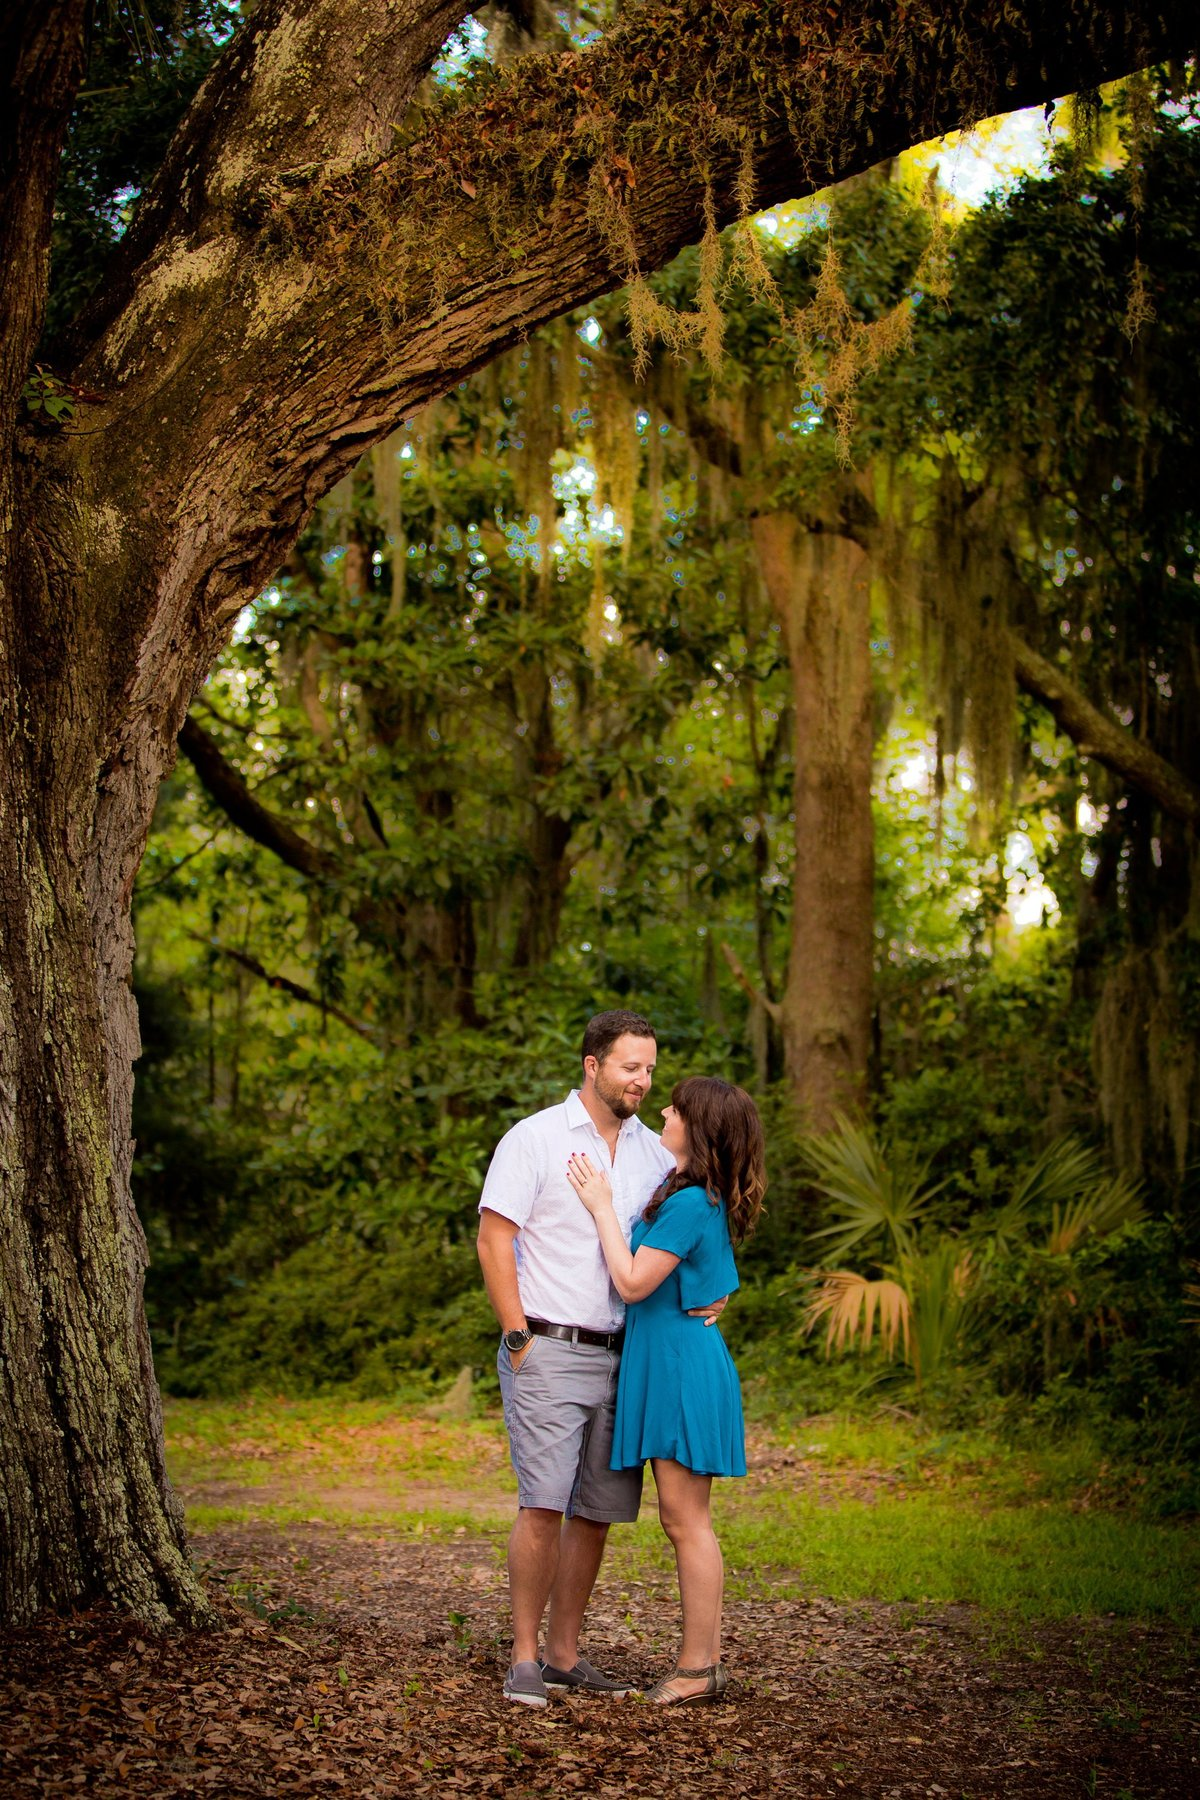 Hilton Head Engagement Photographer www.sylviaschutzphotography.com